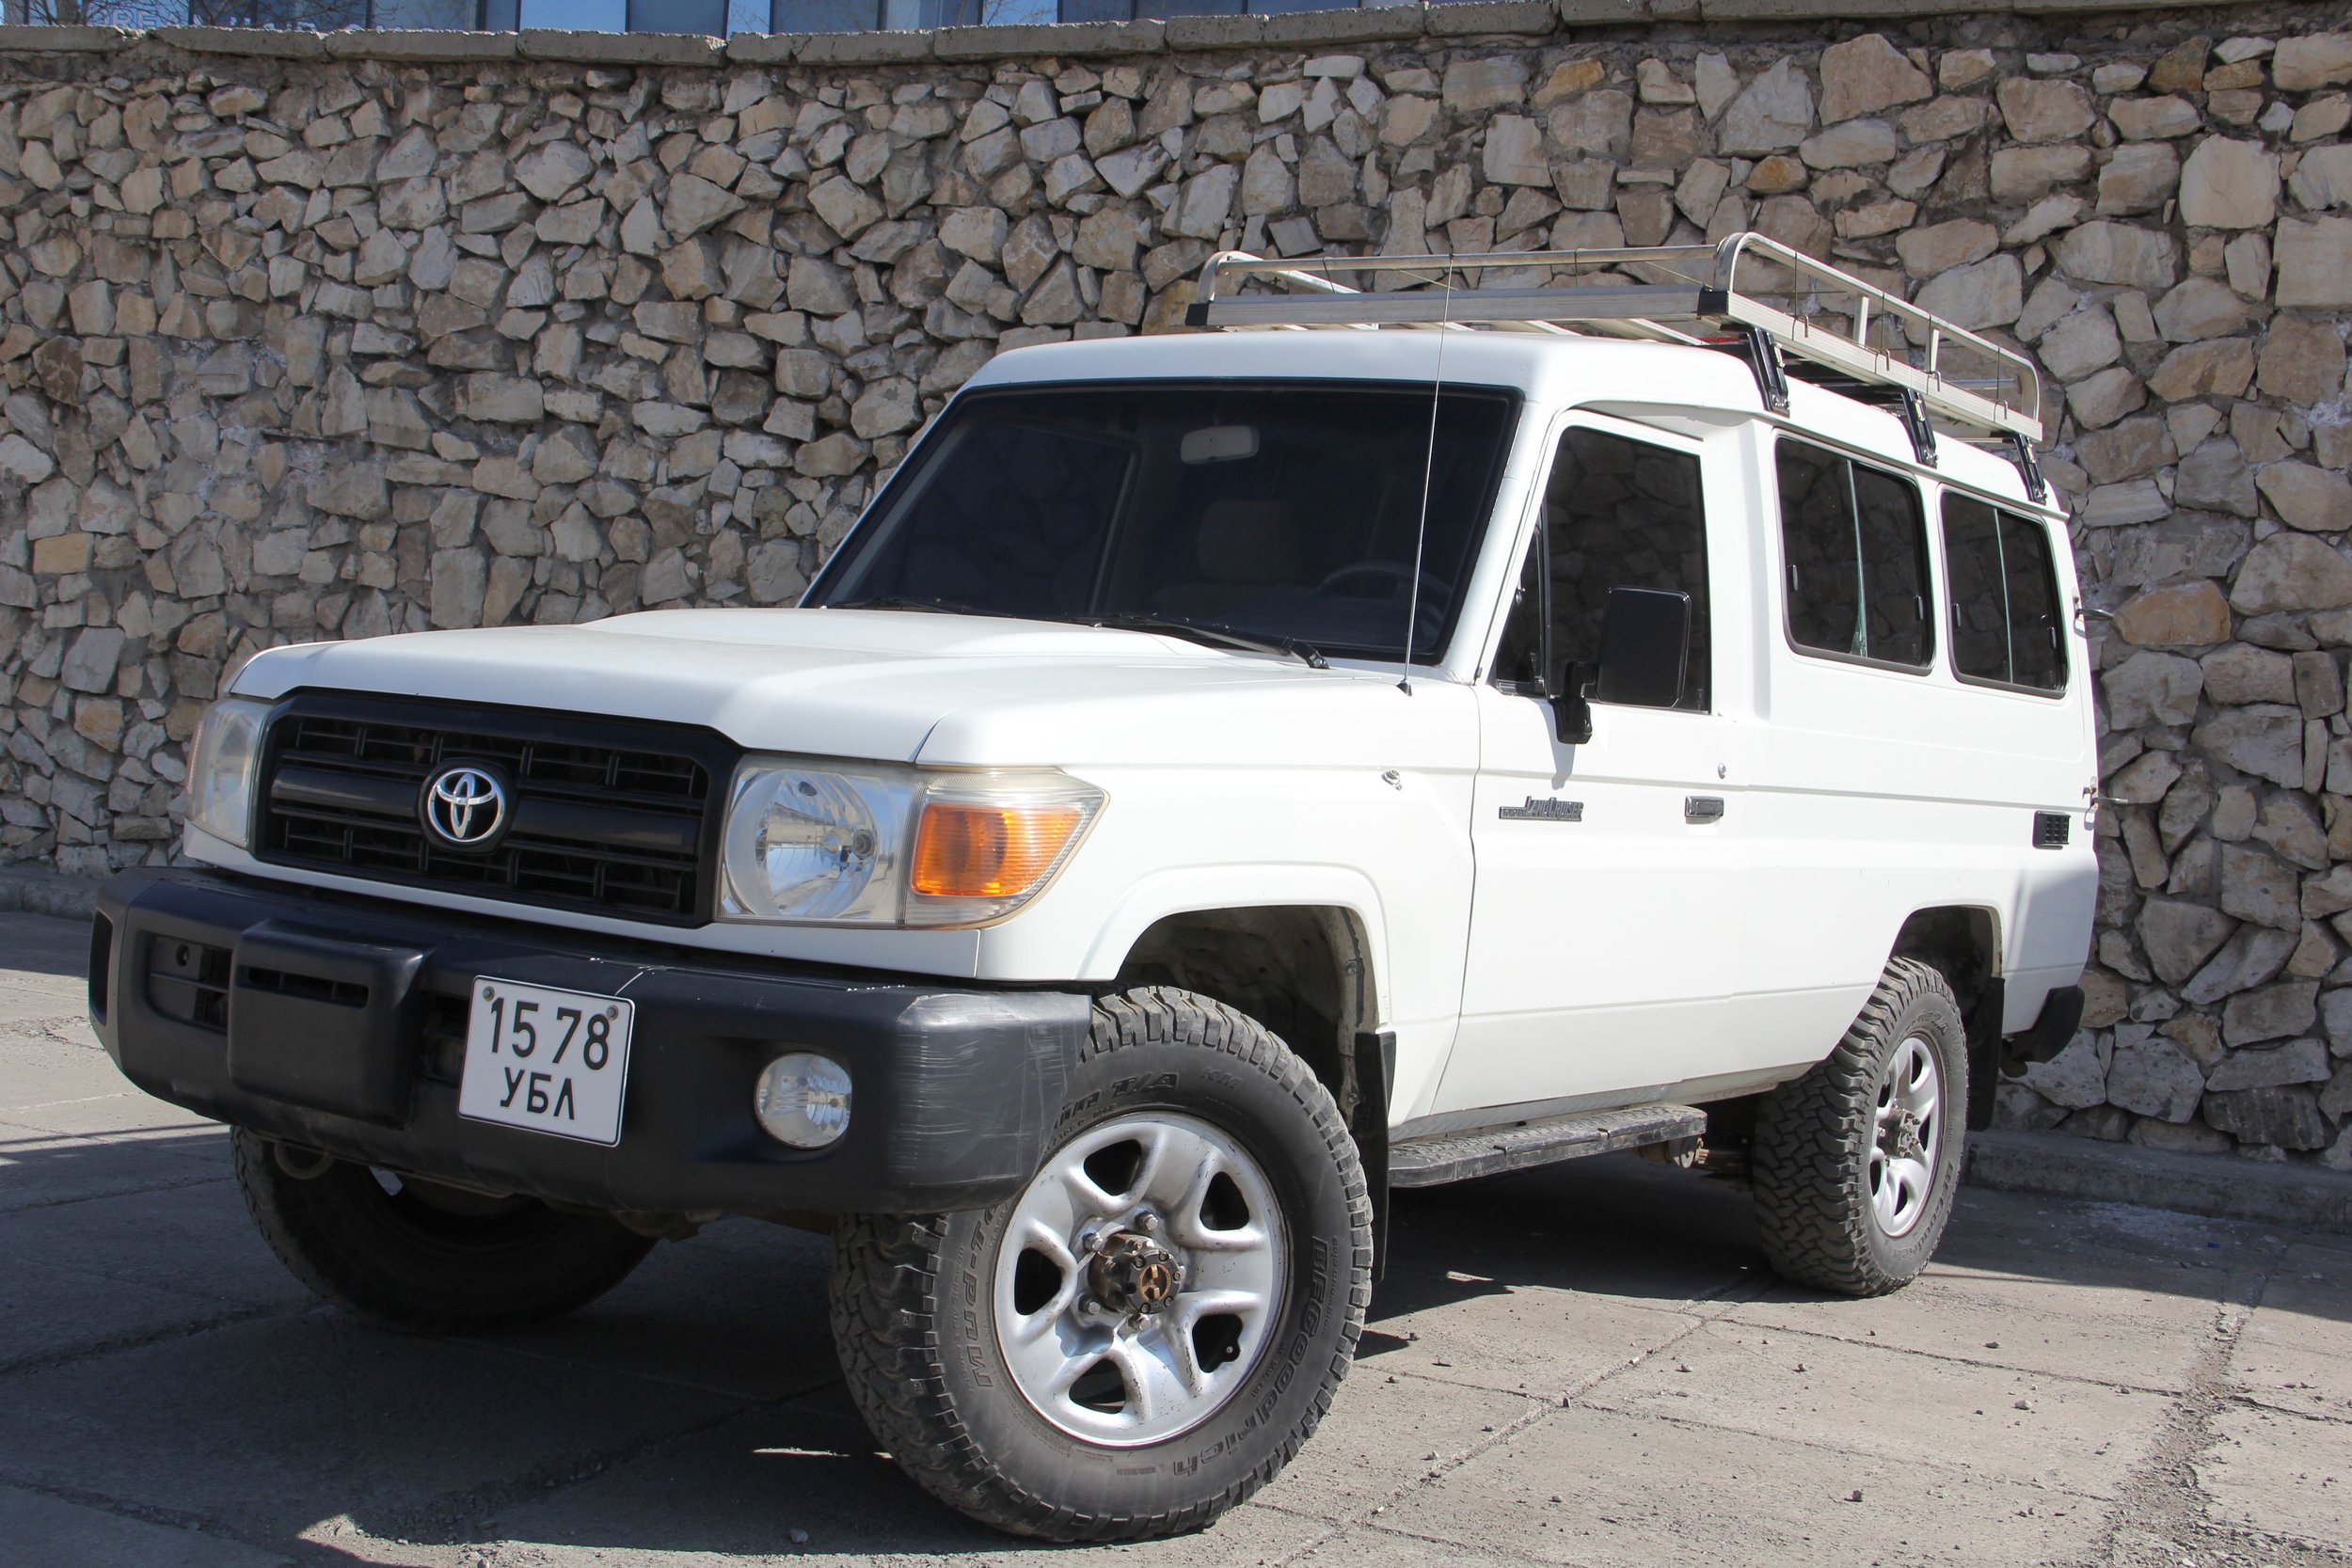 Toyota Land Cruiser 78 series Diesel, Manual Transmission, left wheeled, with Tough Off roading capabilities - All our vehicles are equipped with ARB bumper and winches.We will provide 2 extra tires along with Tool kit with necessary spare parts, Camping kit, Cooking gears, gas stove, water container, pots and pans, forks, knives and cutlery.Roof tents are available and can be installed.